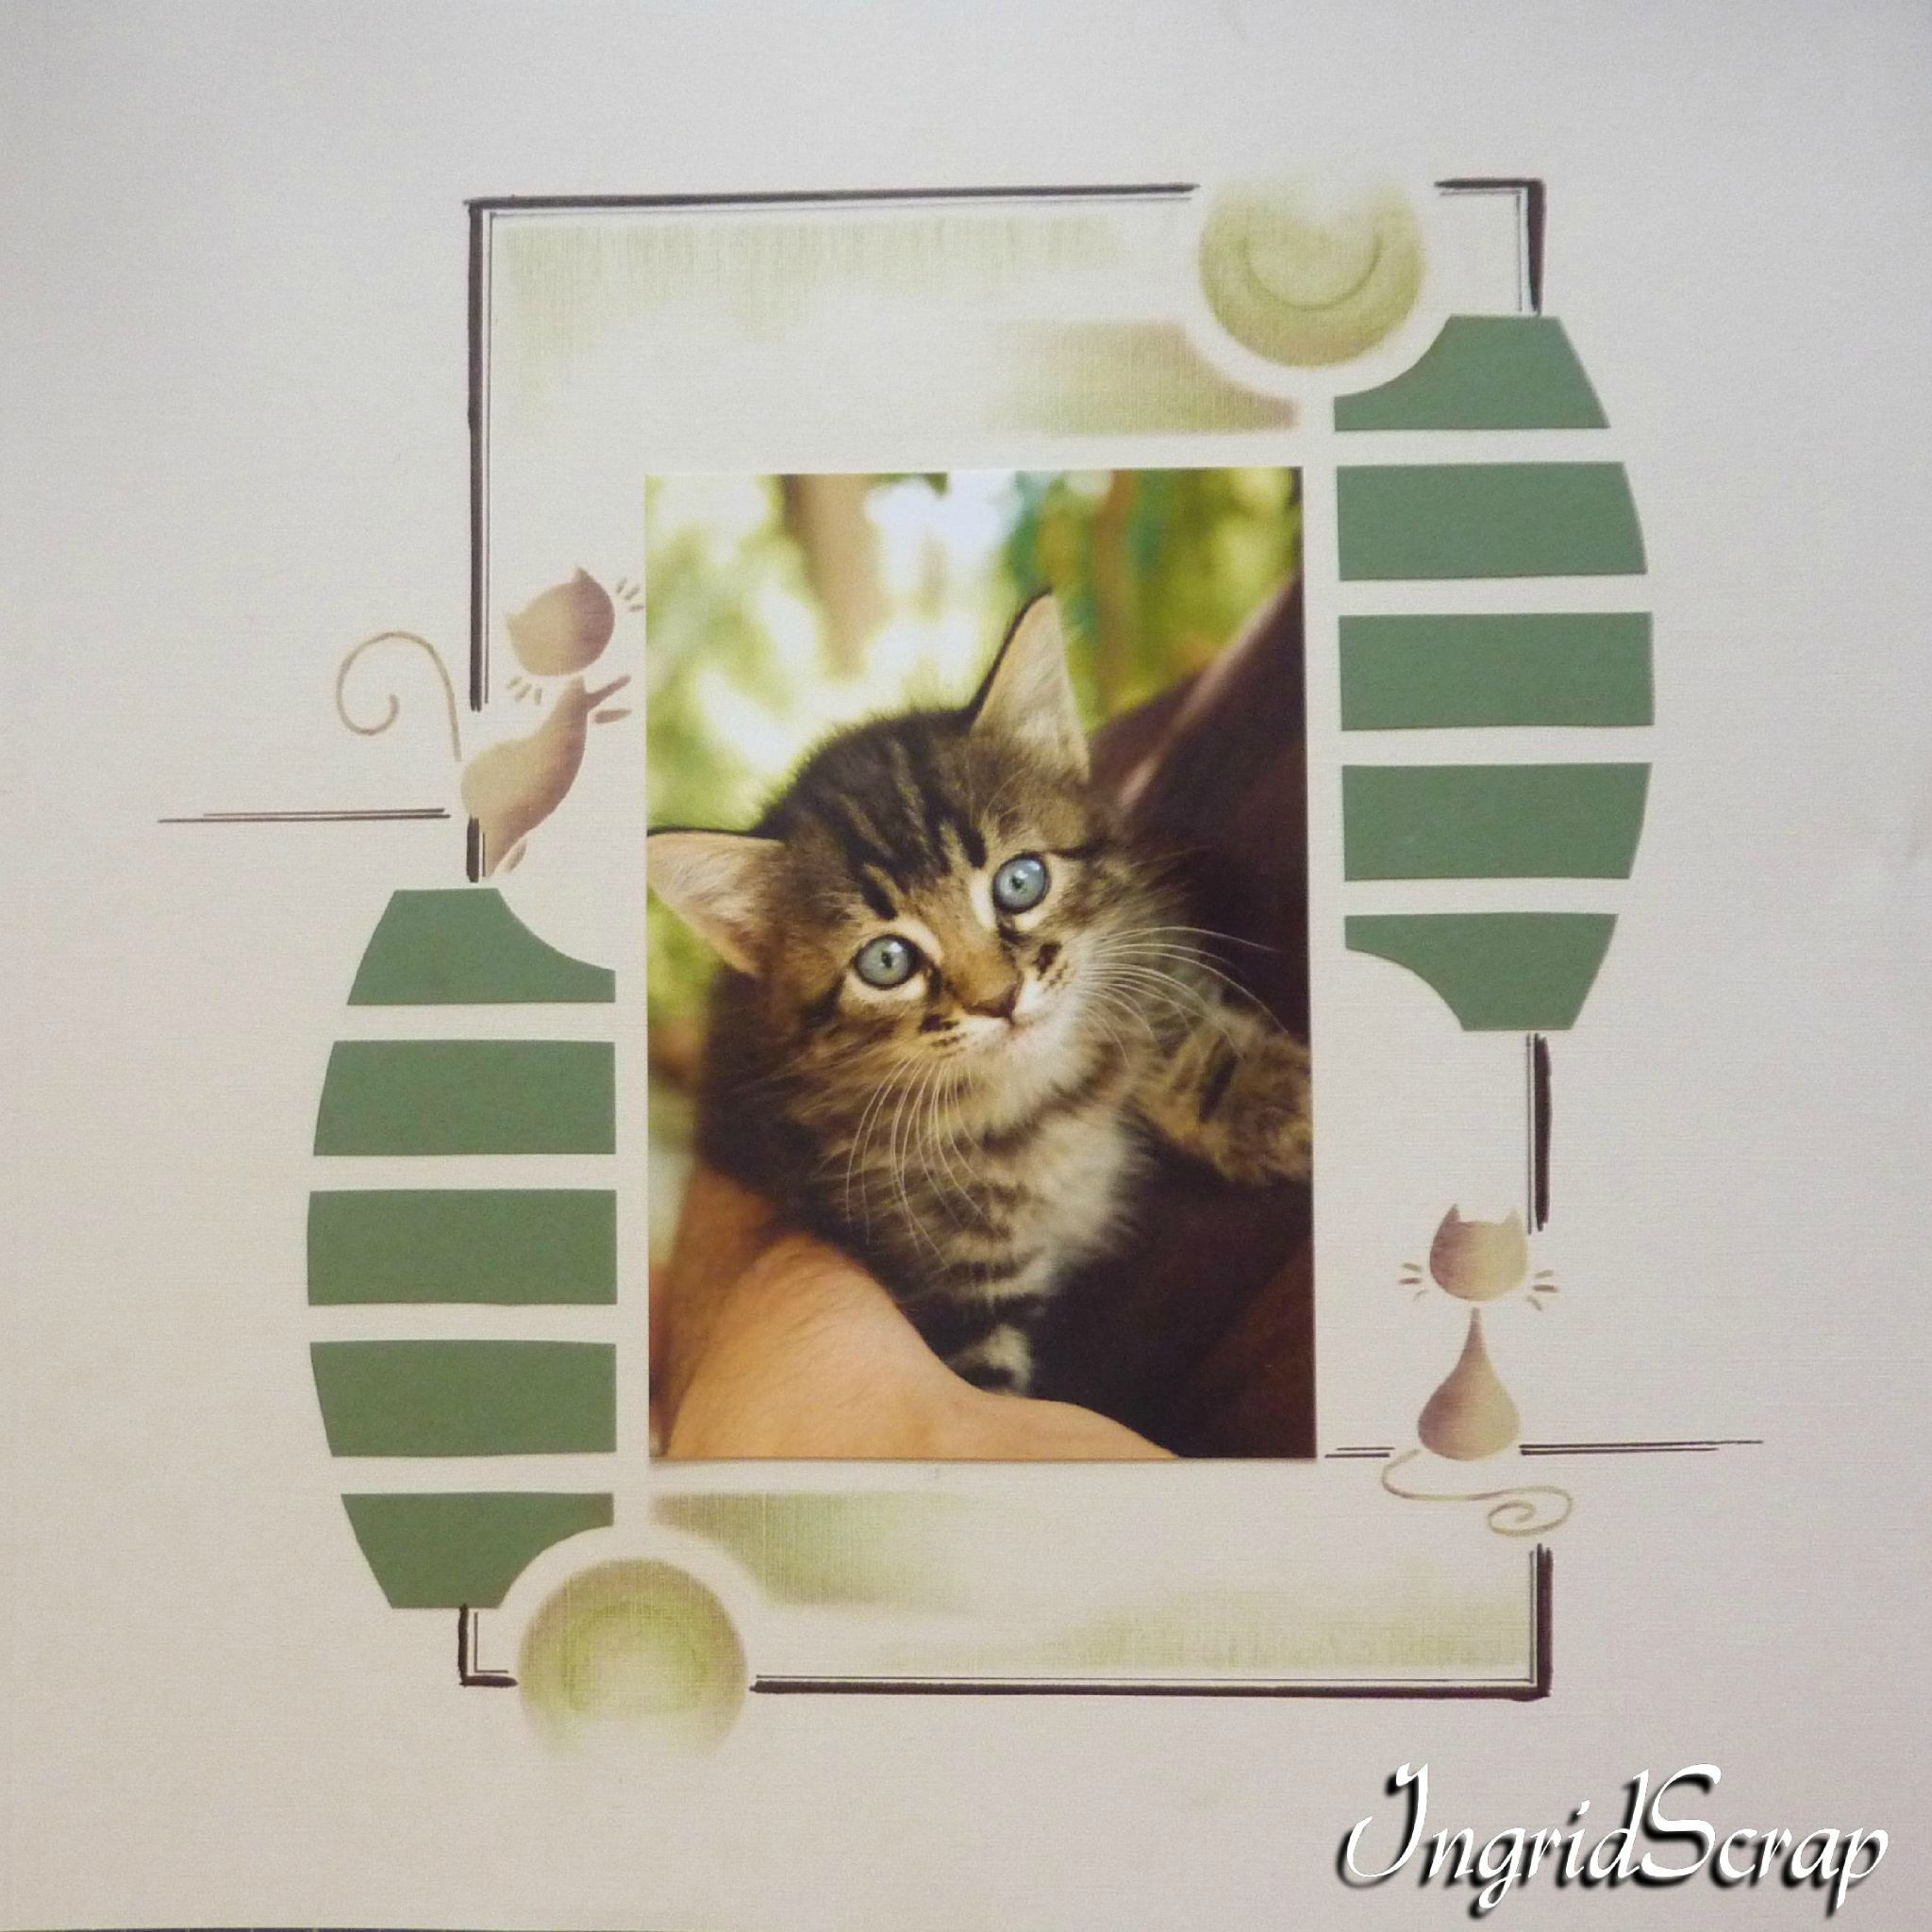 exemple page scrapbooking azza